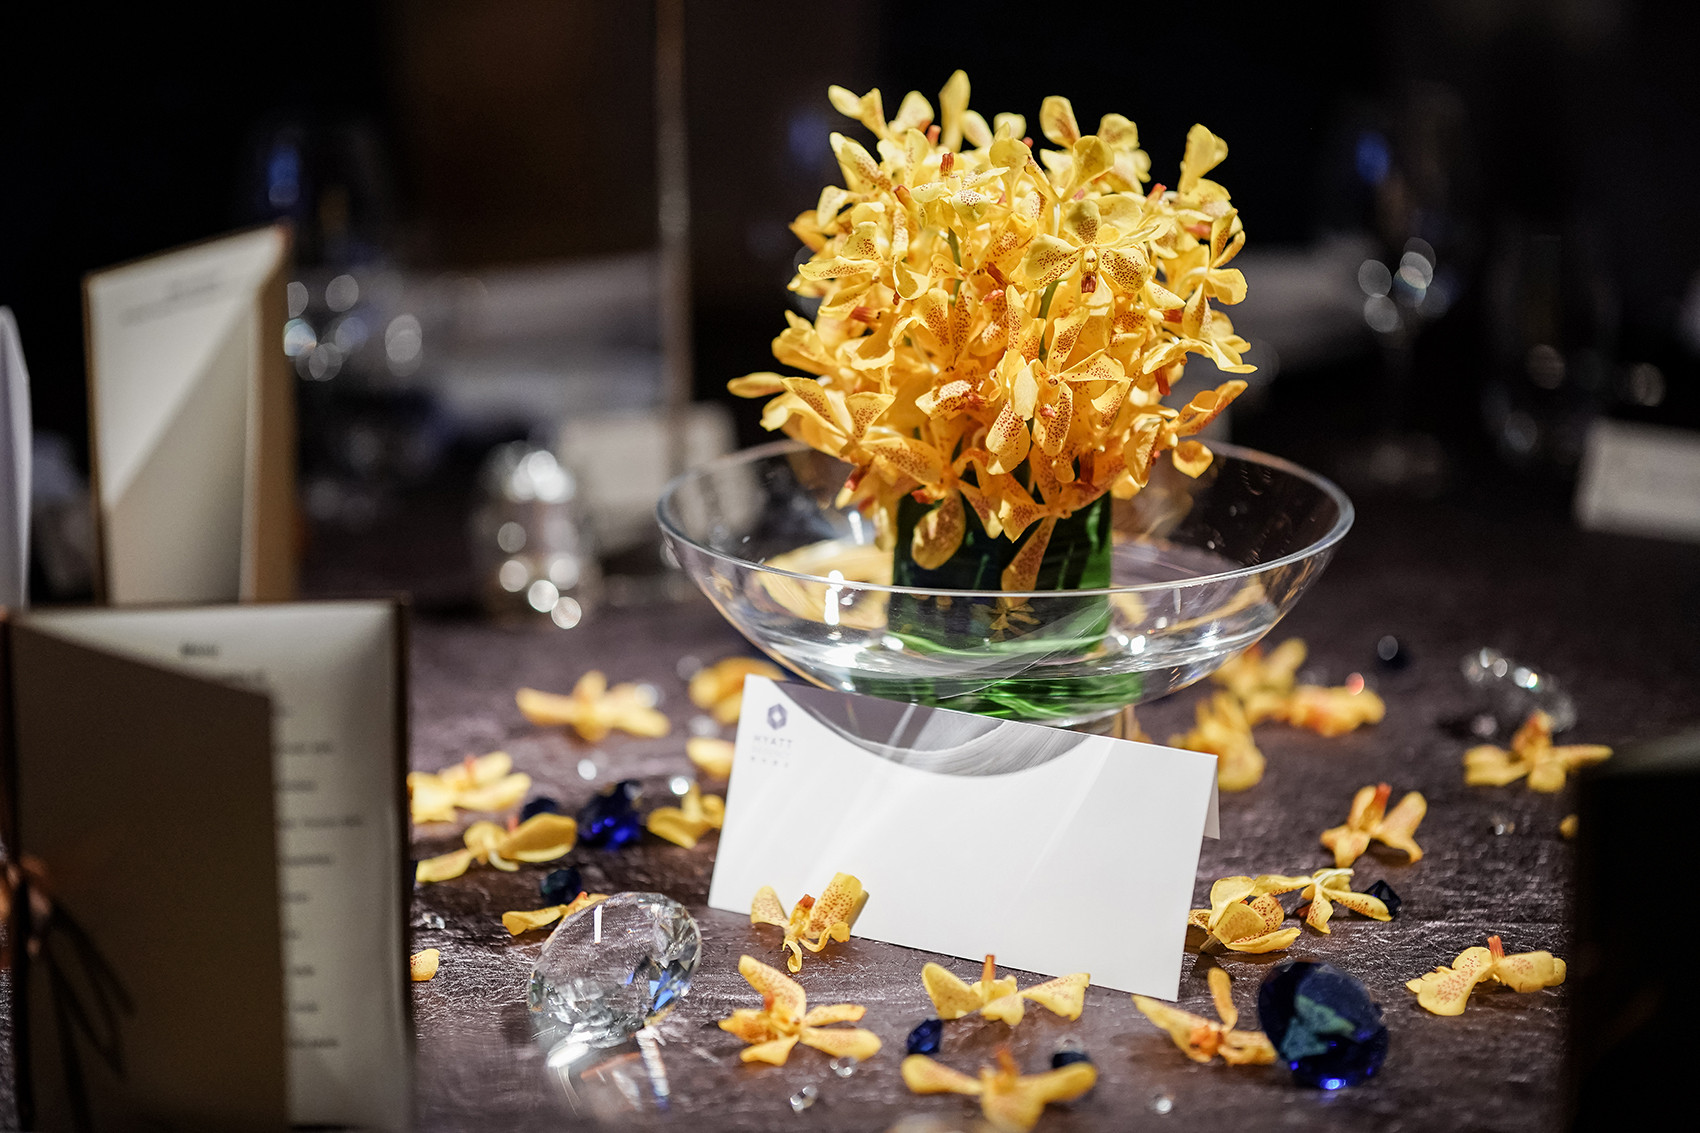 Yellow flower centerpiece with petals on event table